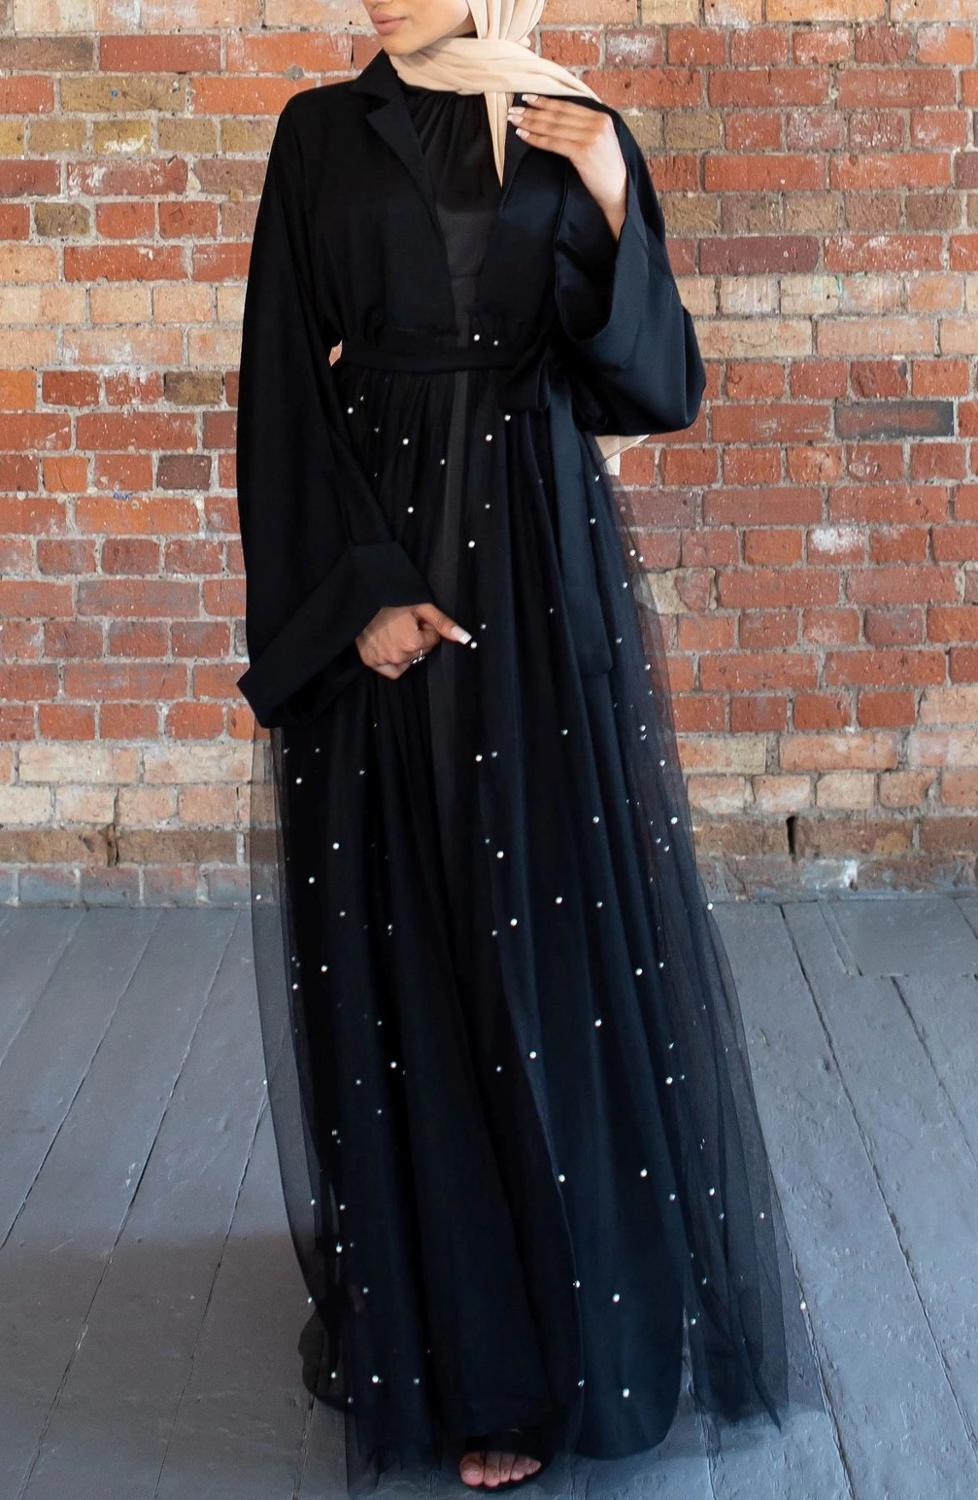 Elegant Black Eid Abaya Dubai Kaftan Kimono Cardigan Lace Muslim Hijab Dress Women Dubai Turkish Islamic Clothing